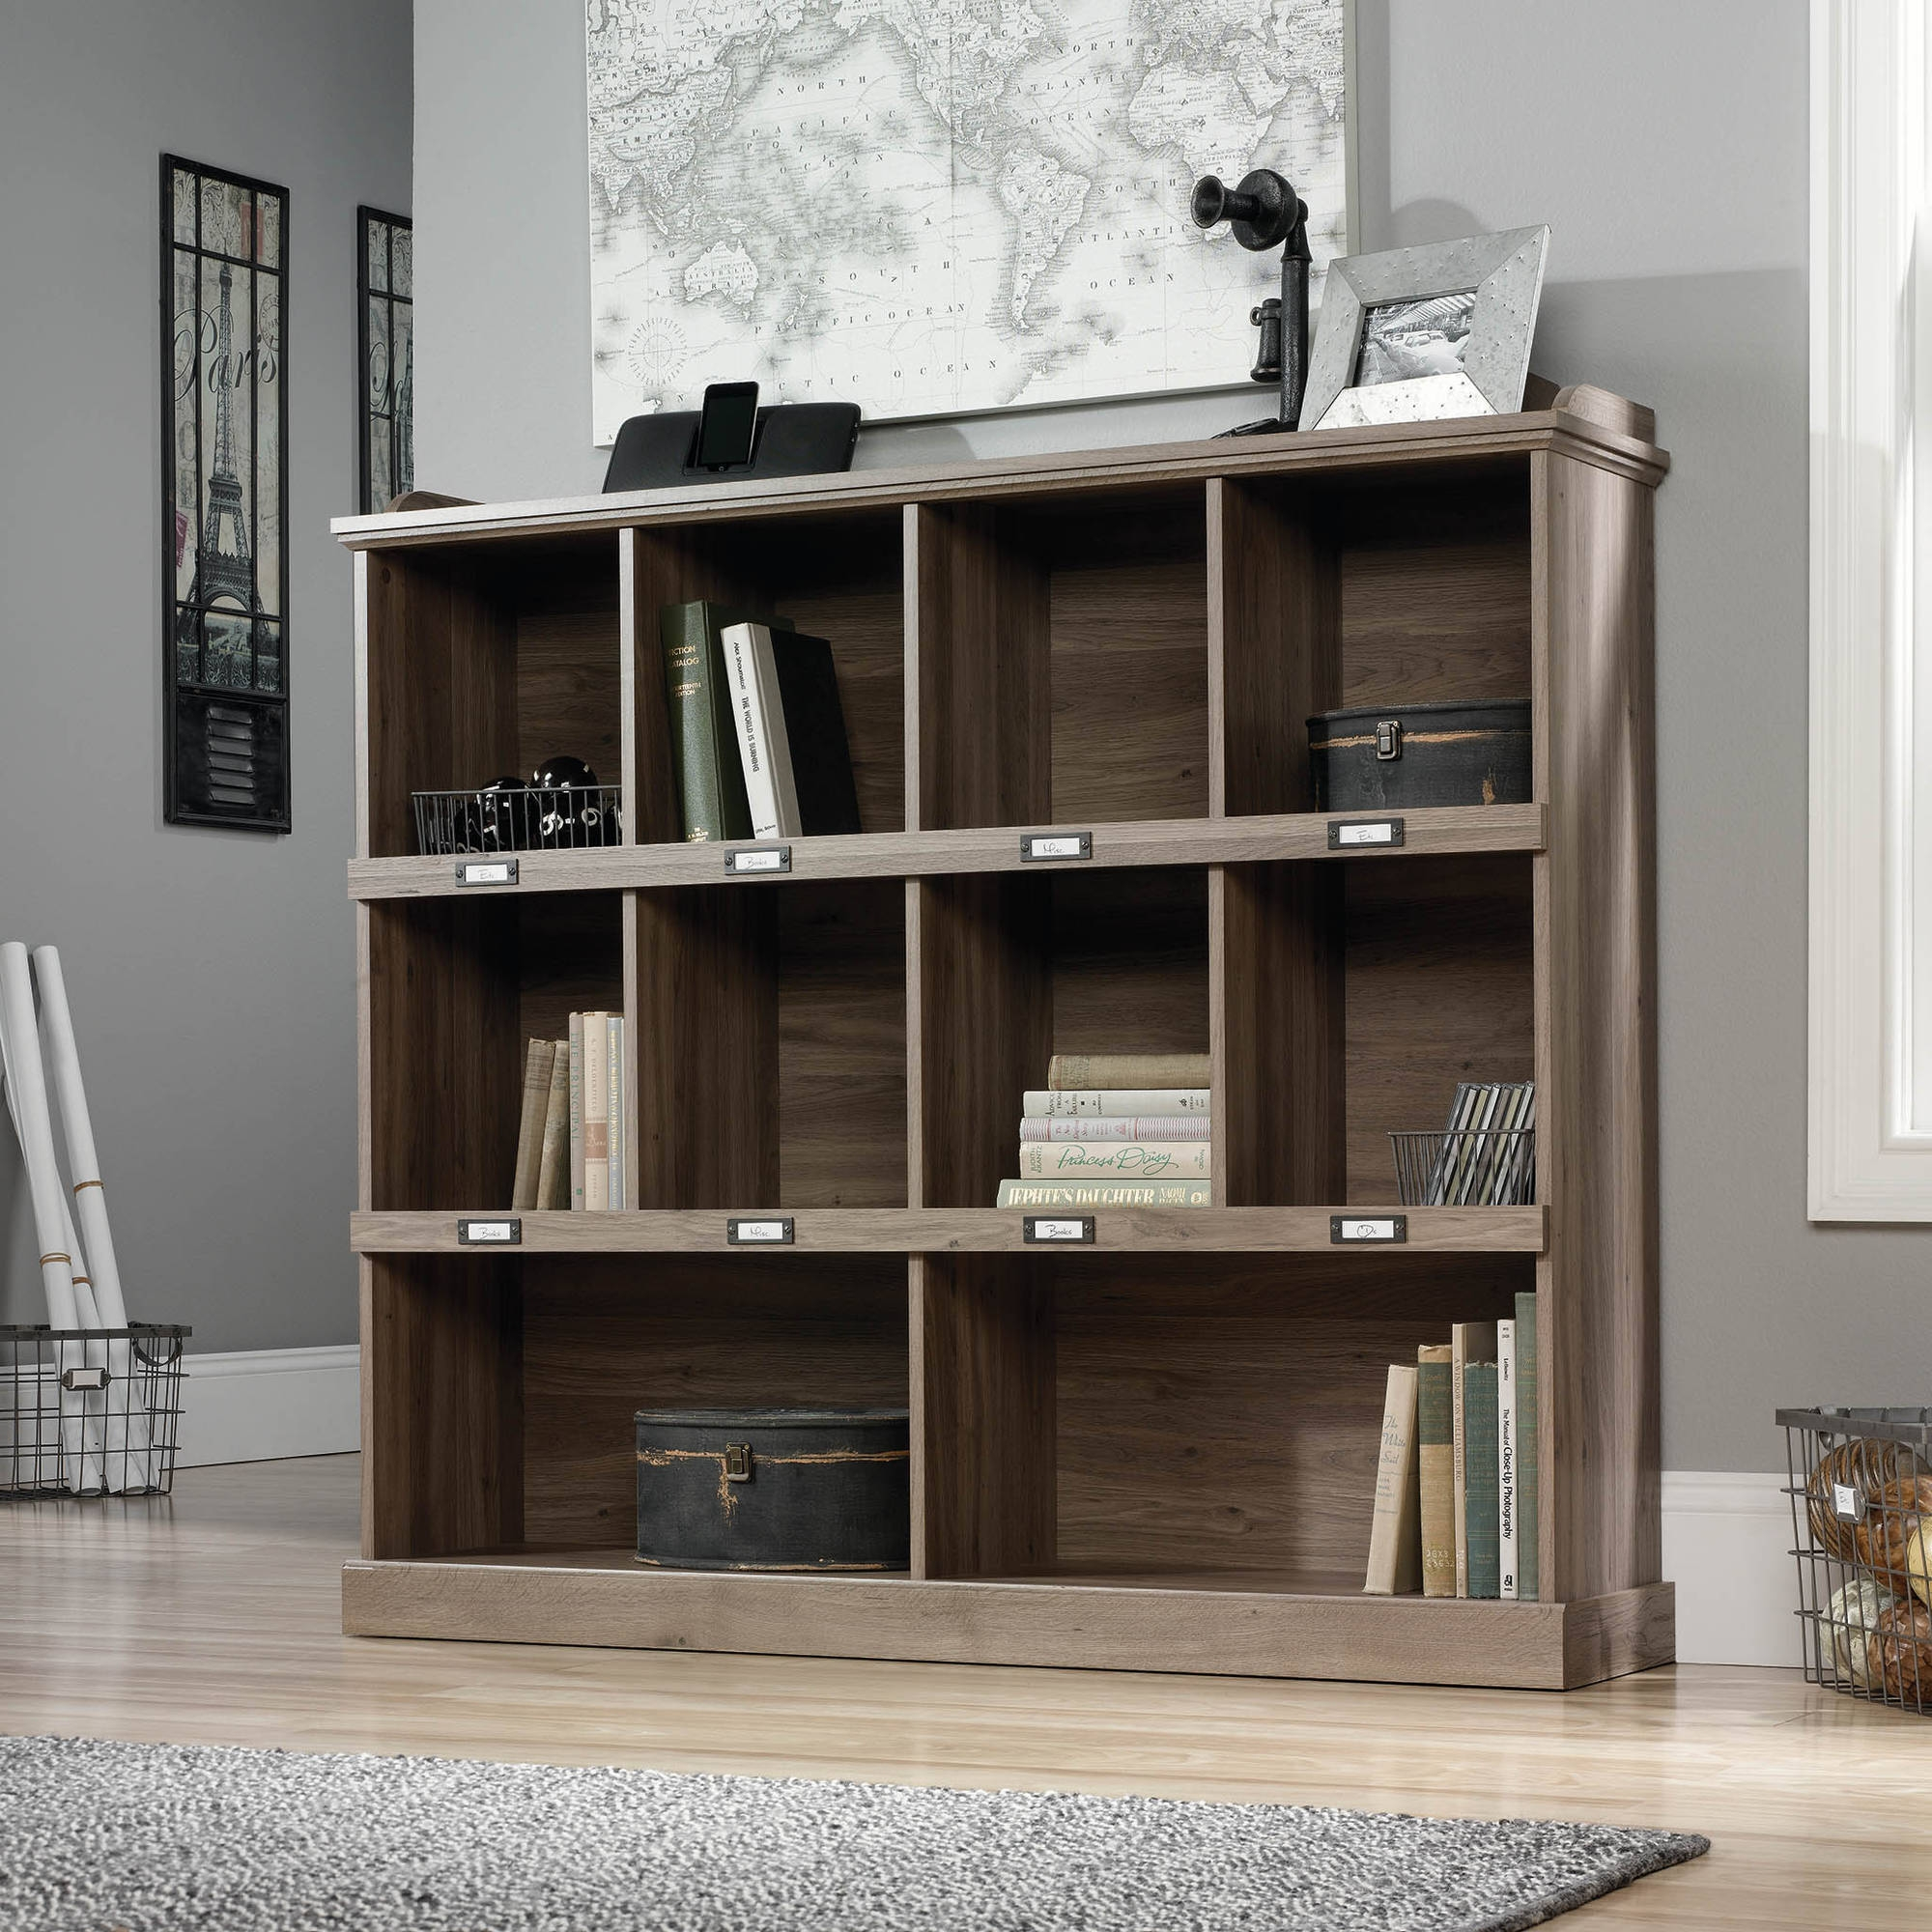 Bookcases Bookshelves Cube Storage Walmart With Regard To Bookcases (#7 of 15)